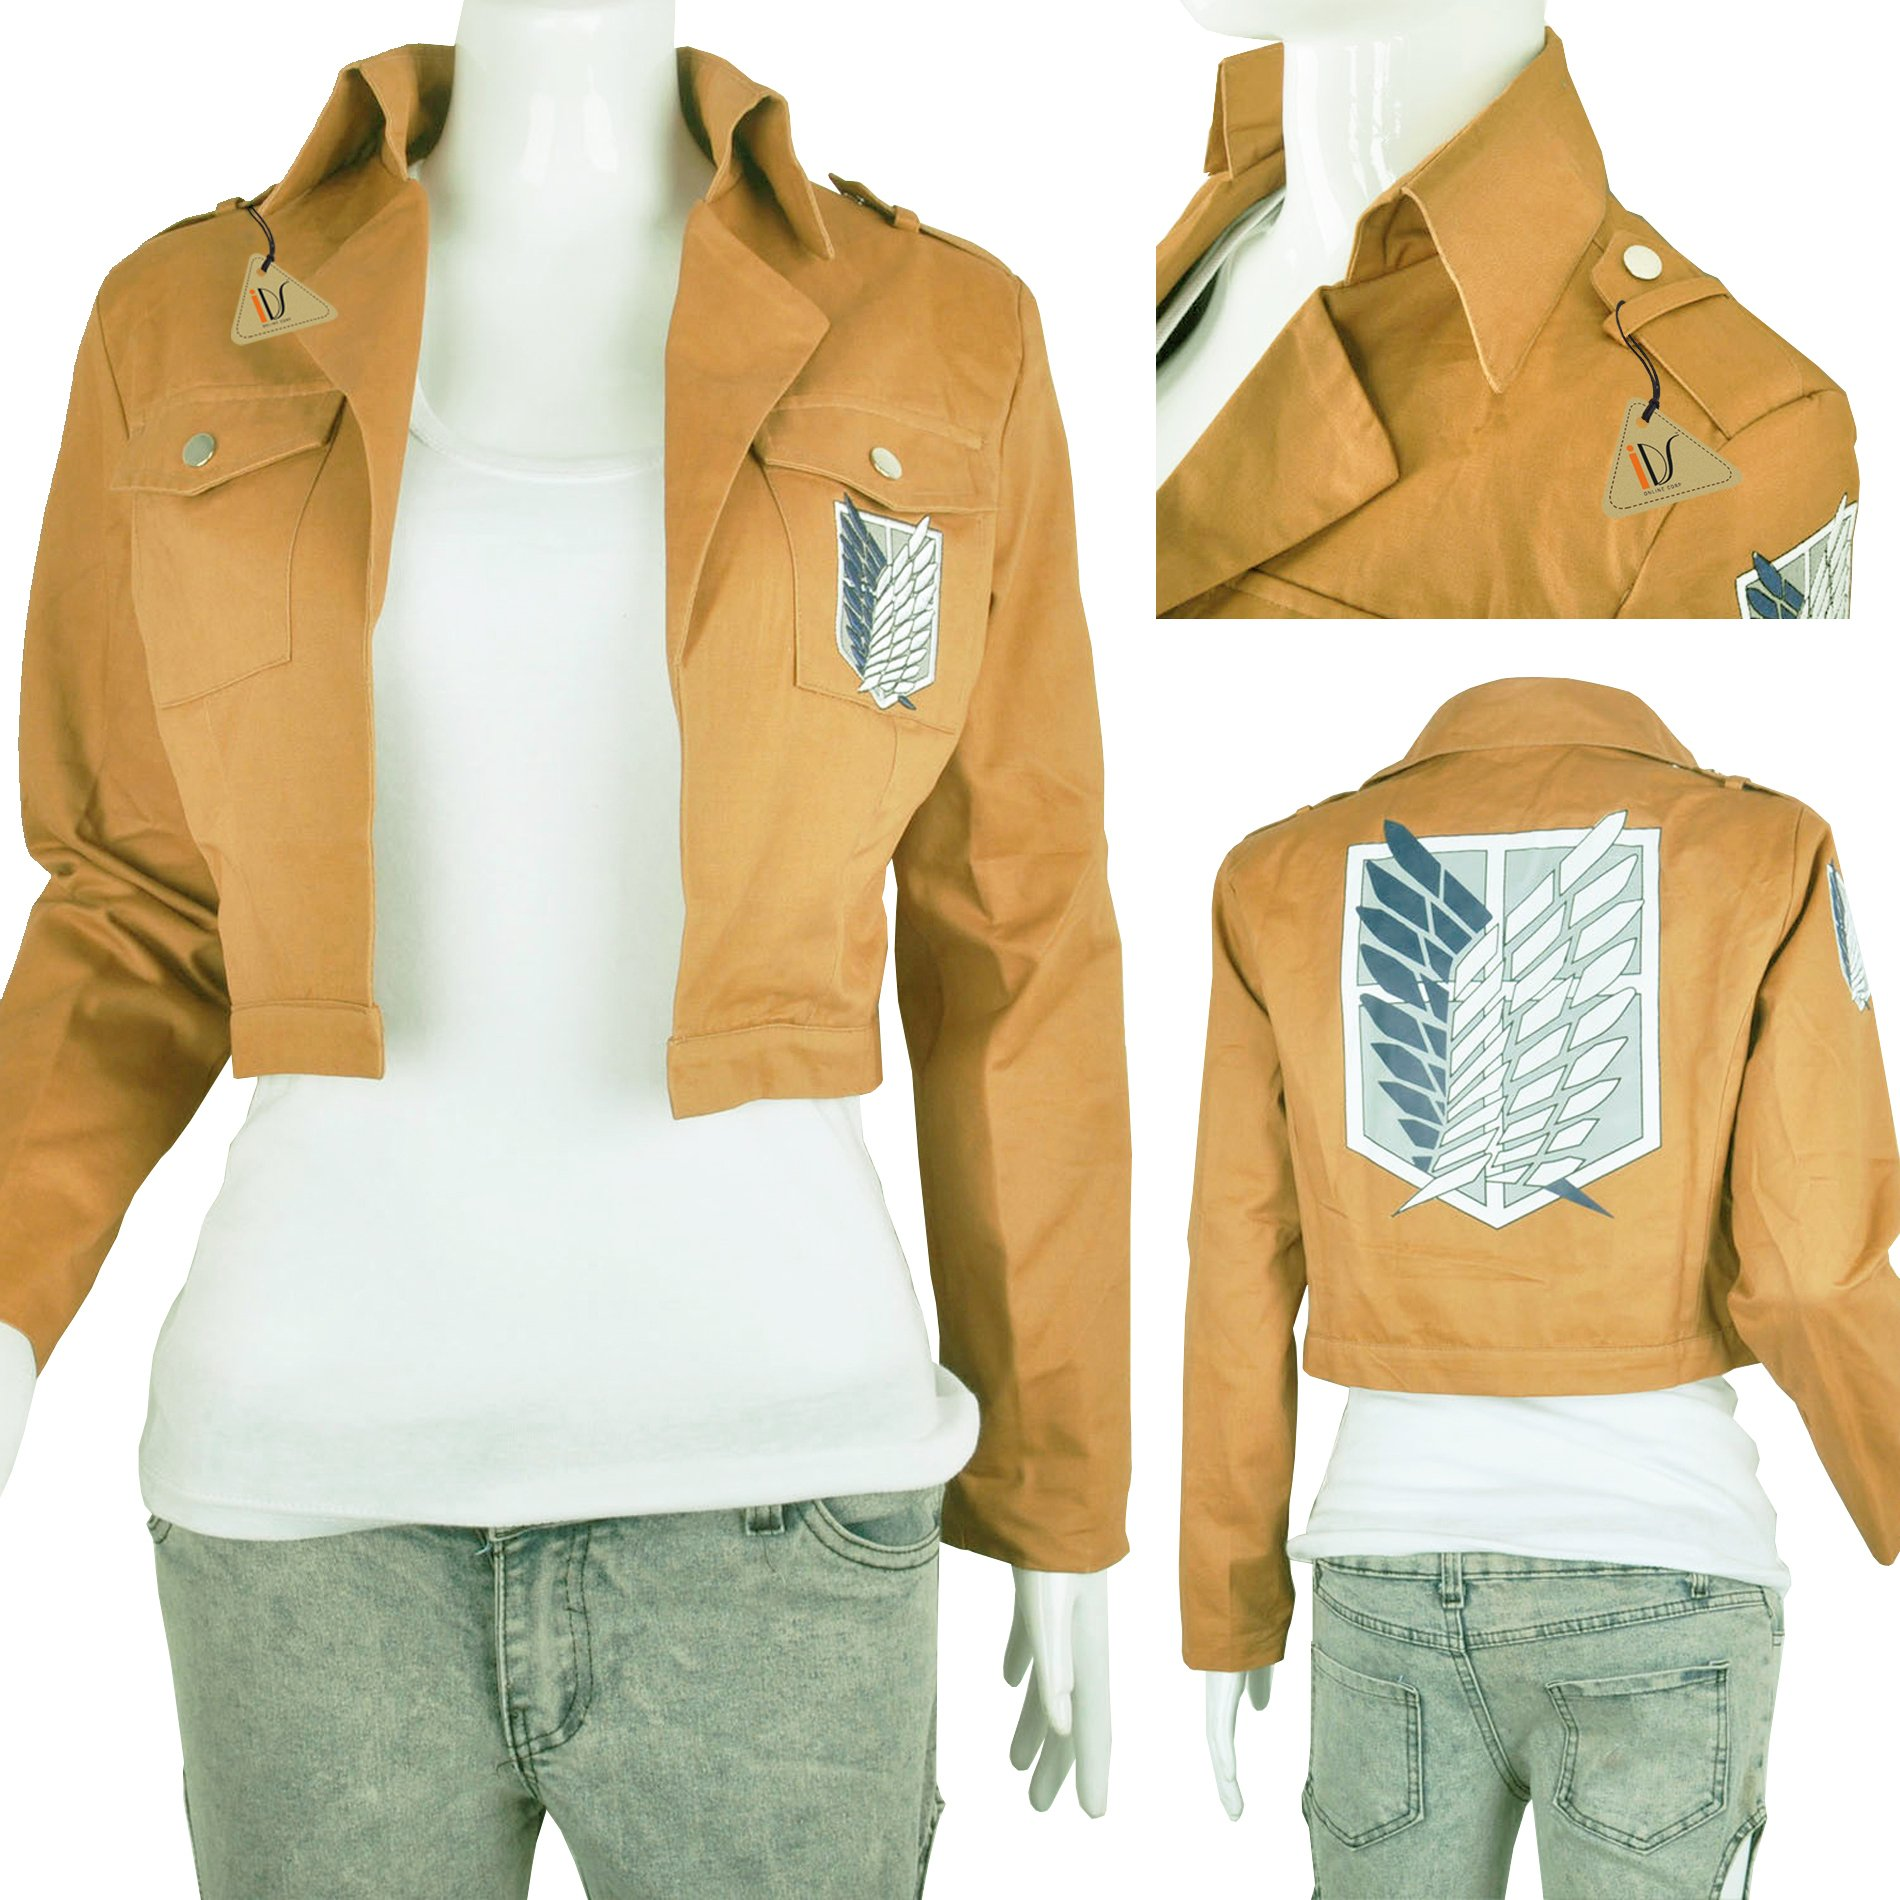 IDS Home Khaki Jacket Coat Cosplay Costumes Halloween Clothes, M